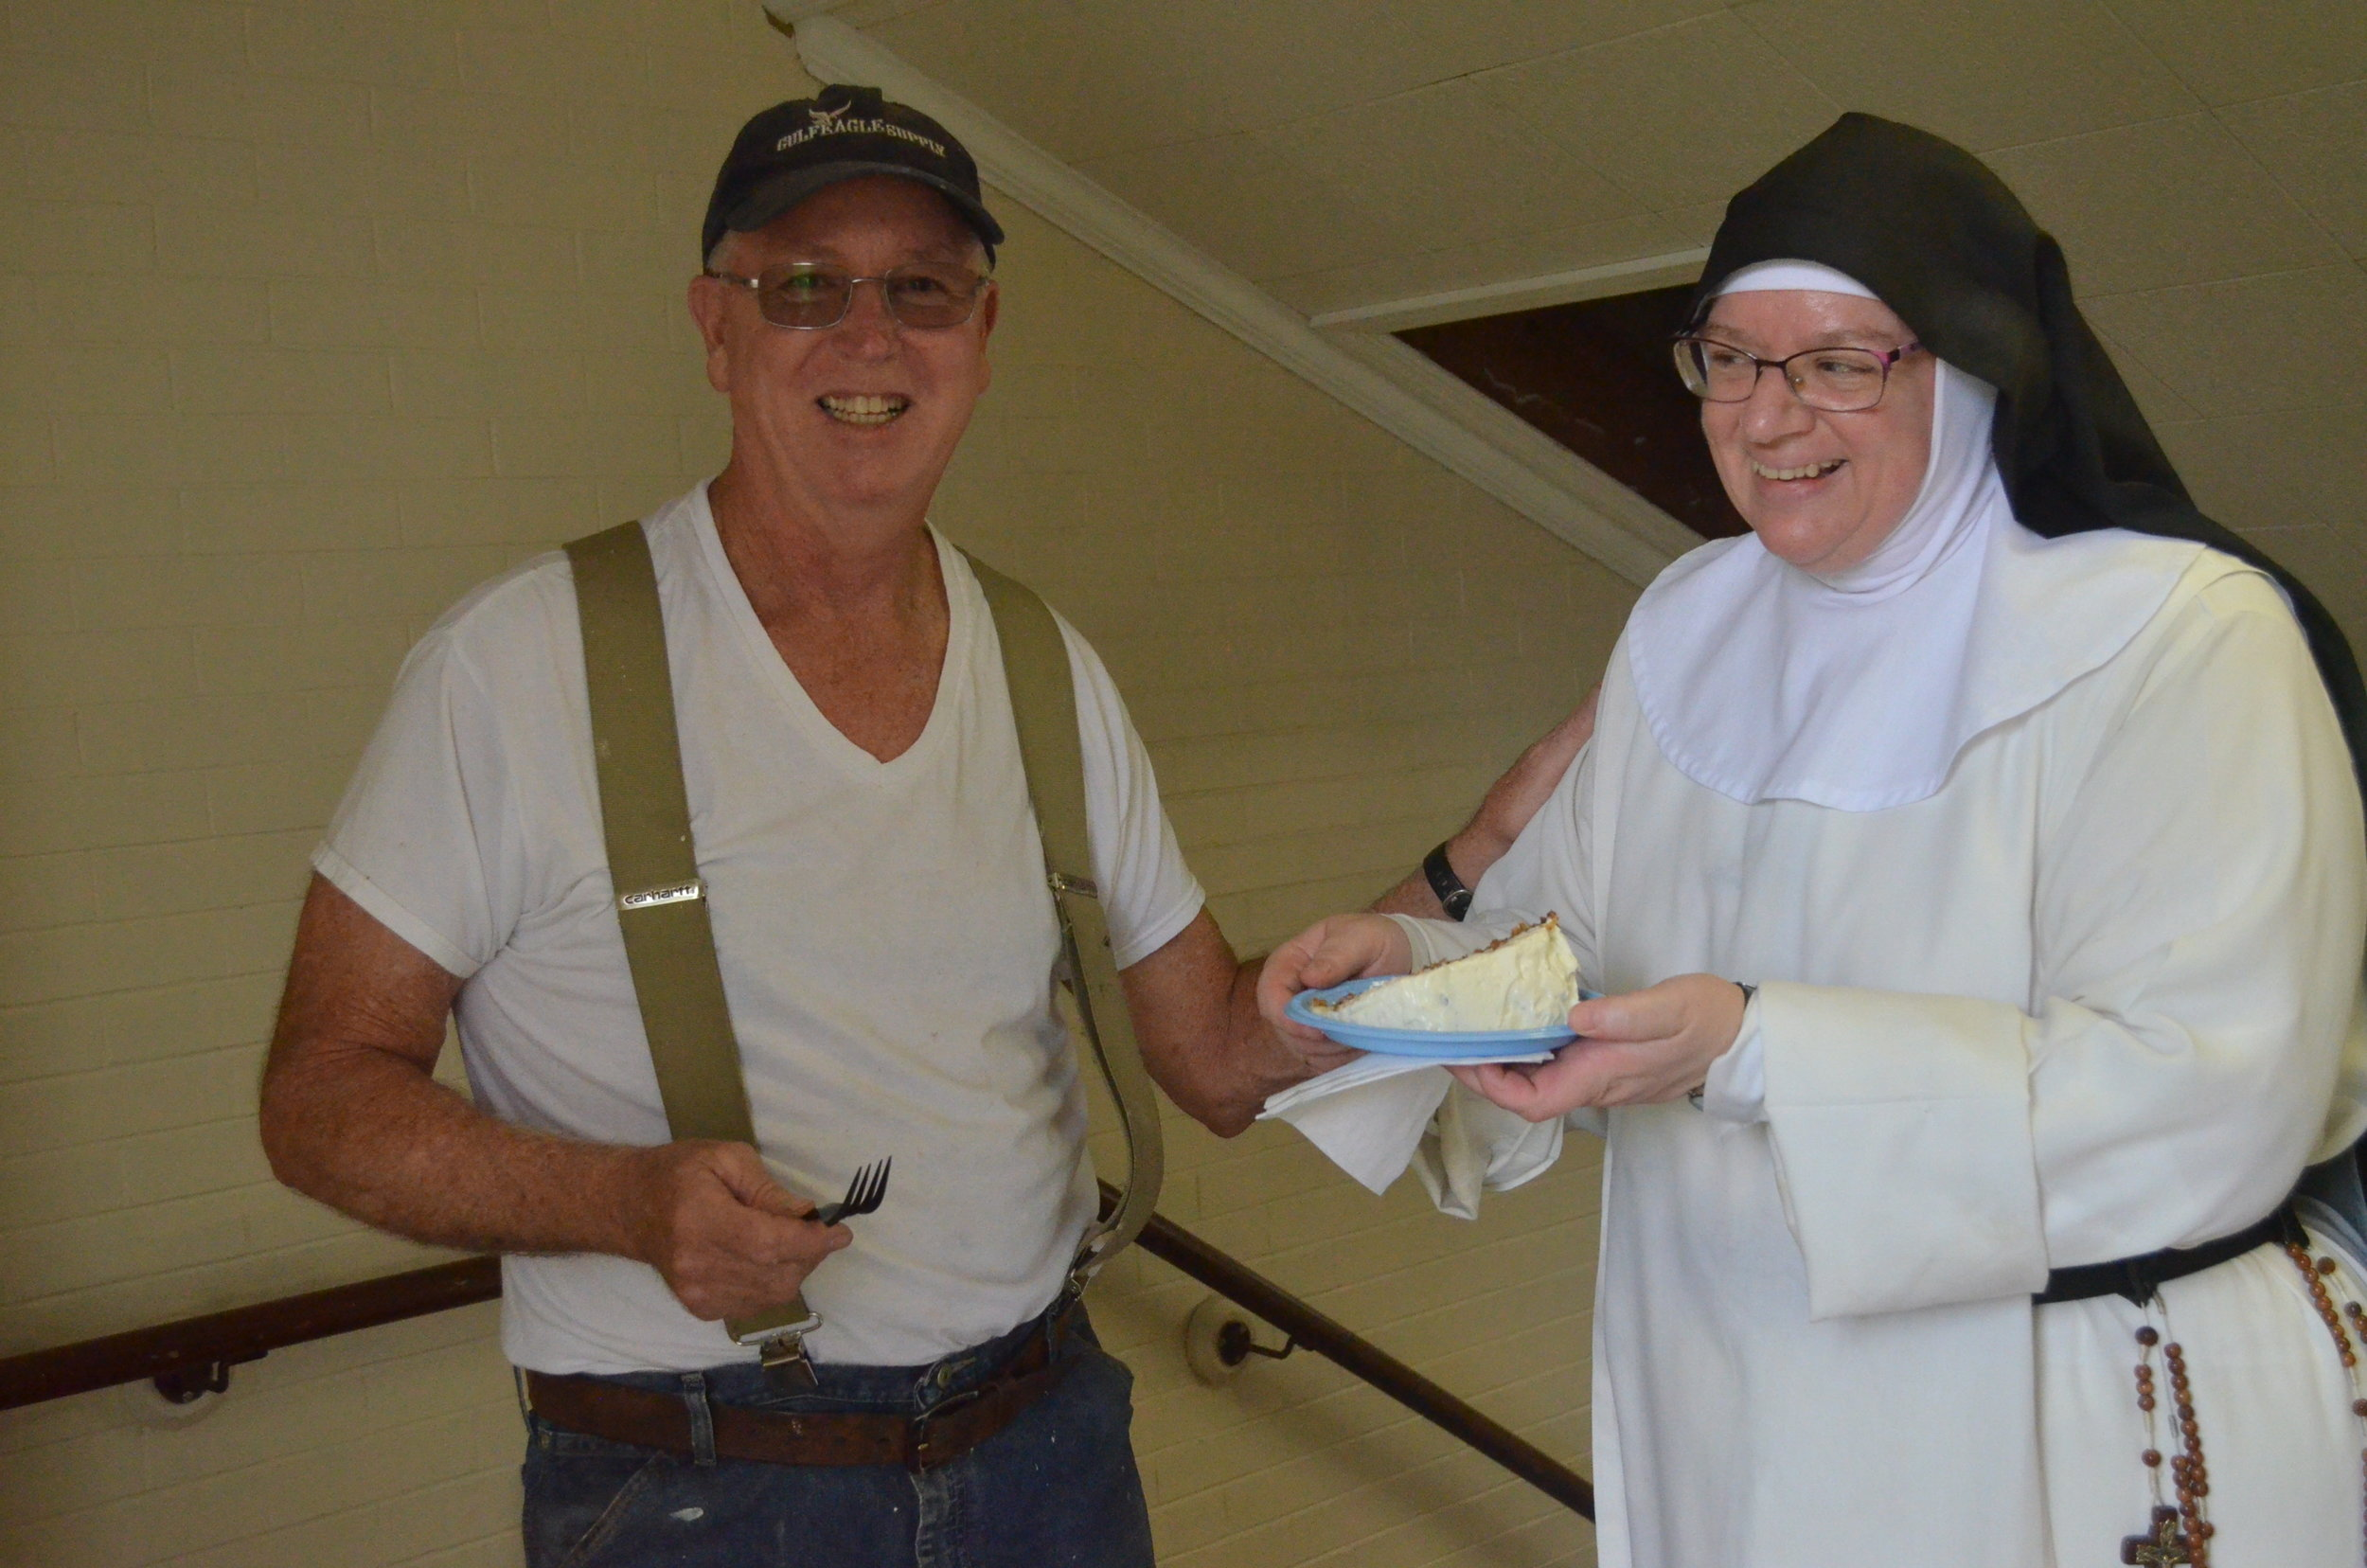 Sr. Judith Miryam gives Jay a piece of her famous carrot cake. It's his favorite!